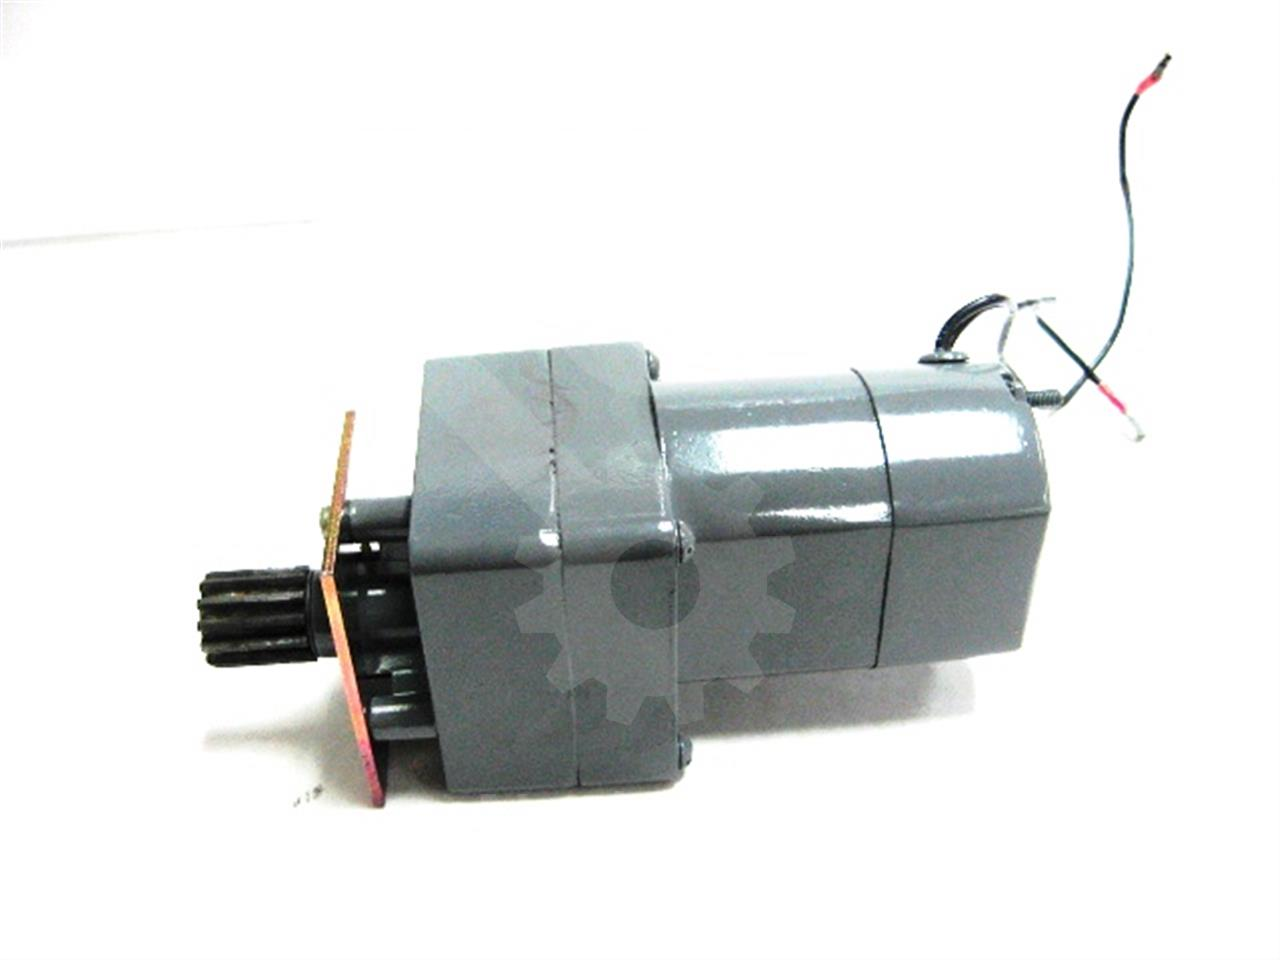 Siemens allis chalmers sa 240vac dc charge motor for Allis chalmers electric motor